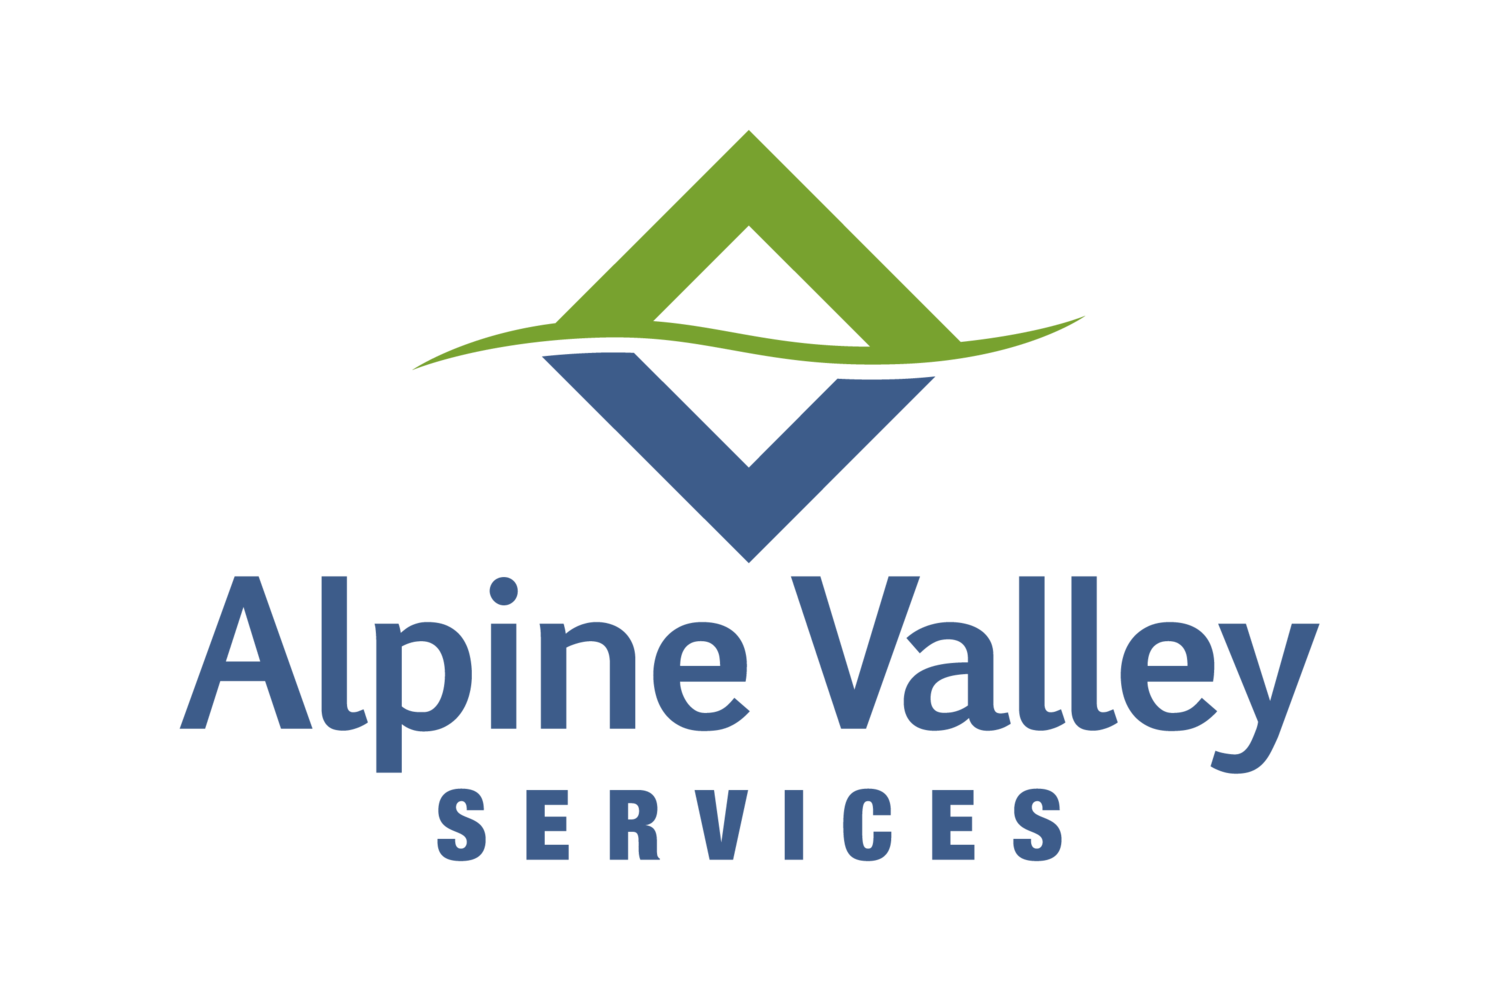 Alpine Valley Services